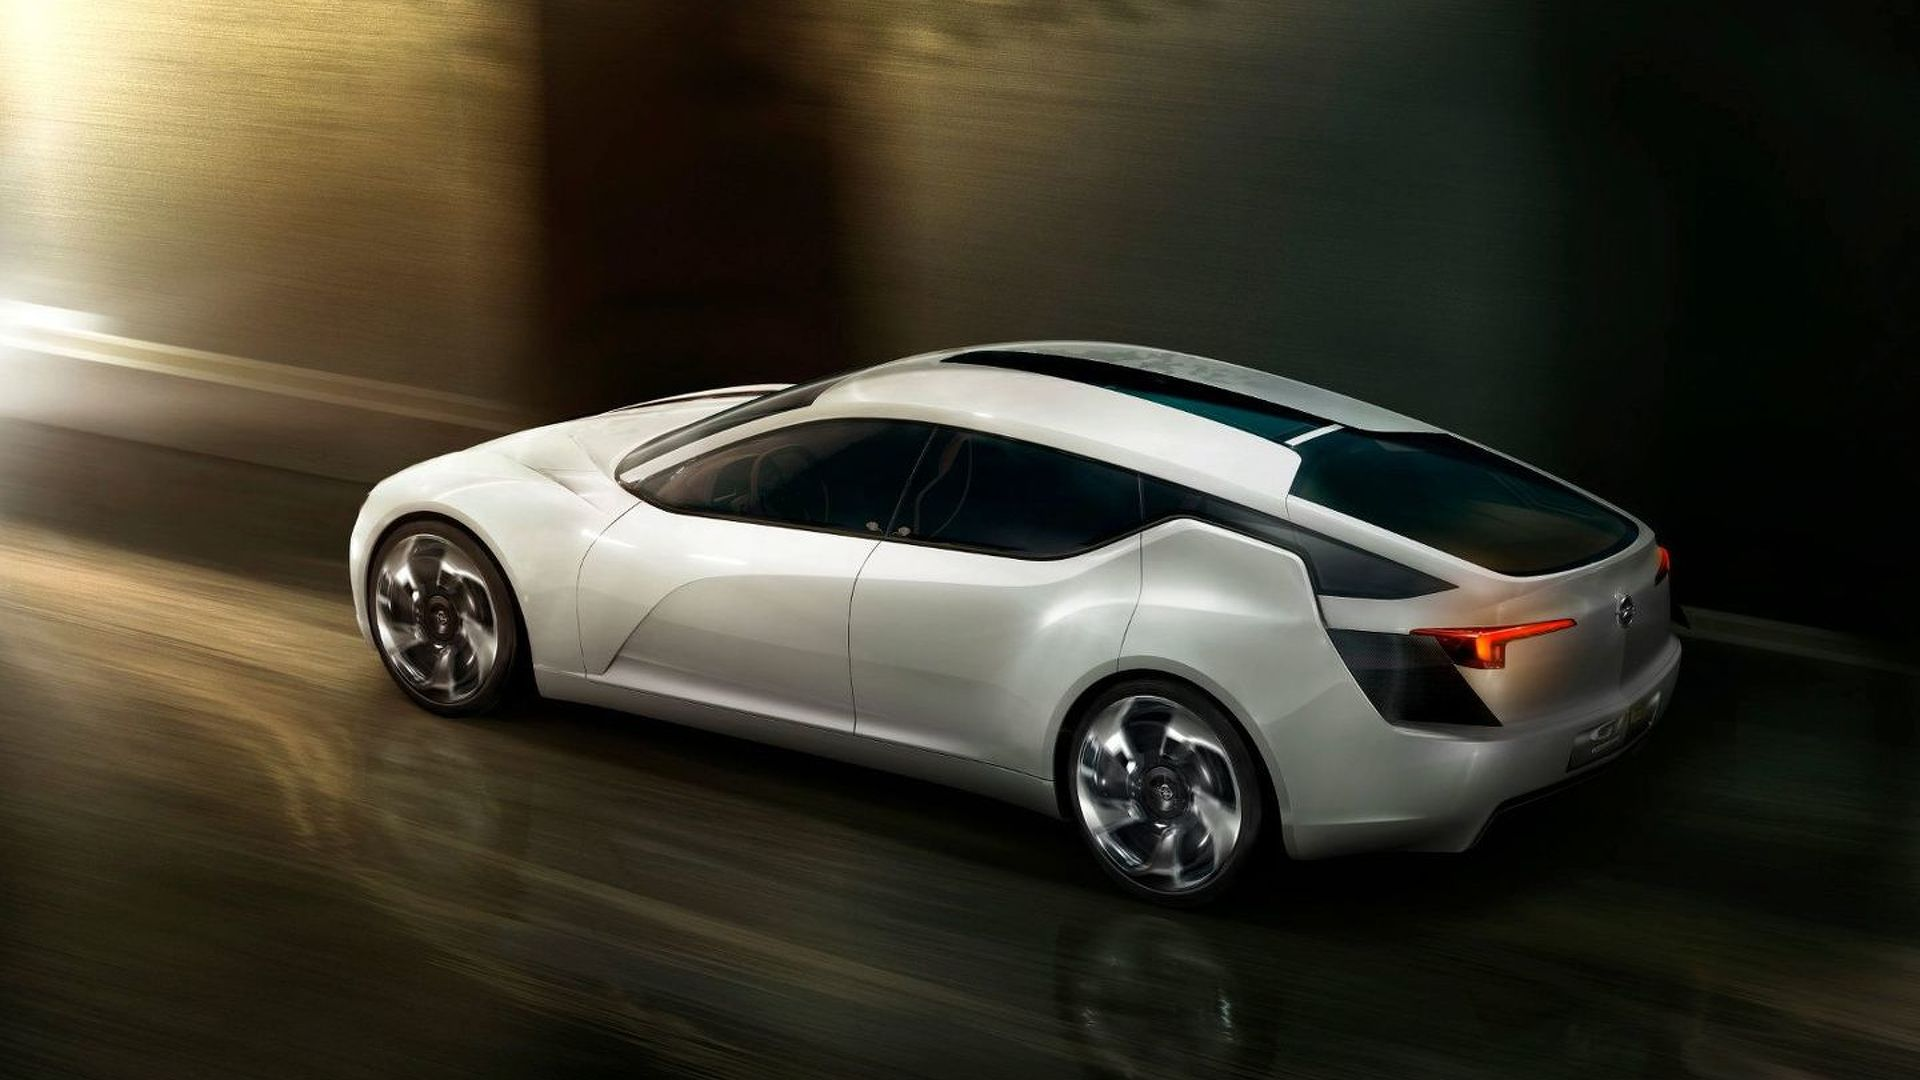 Opel Flextreme GT/E Concept First Photos and Details Released